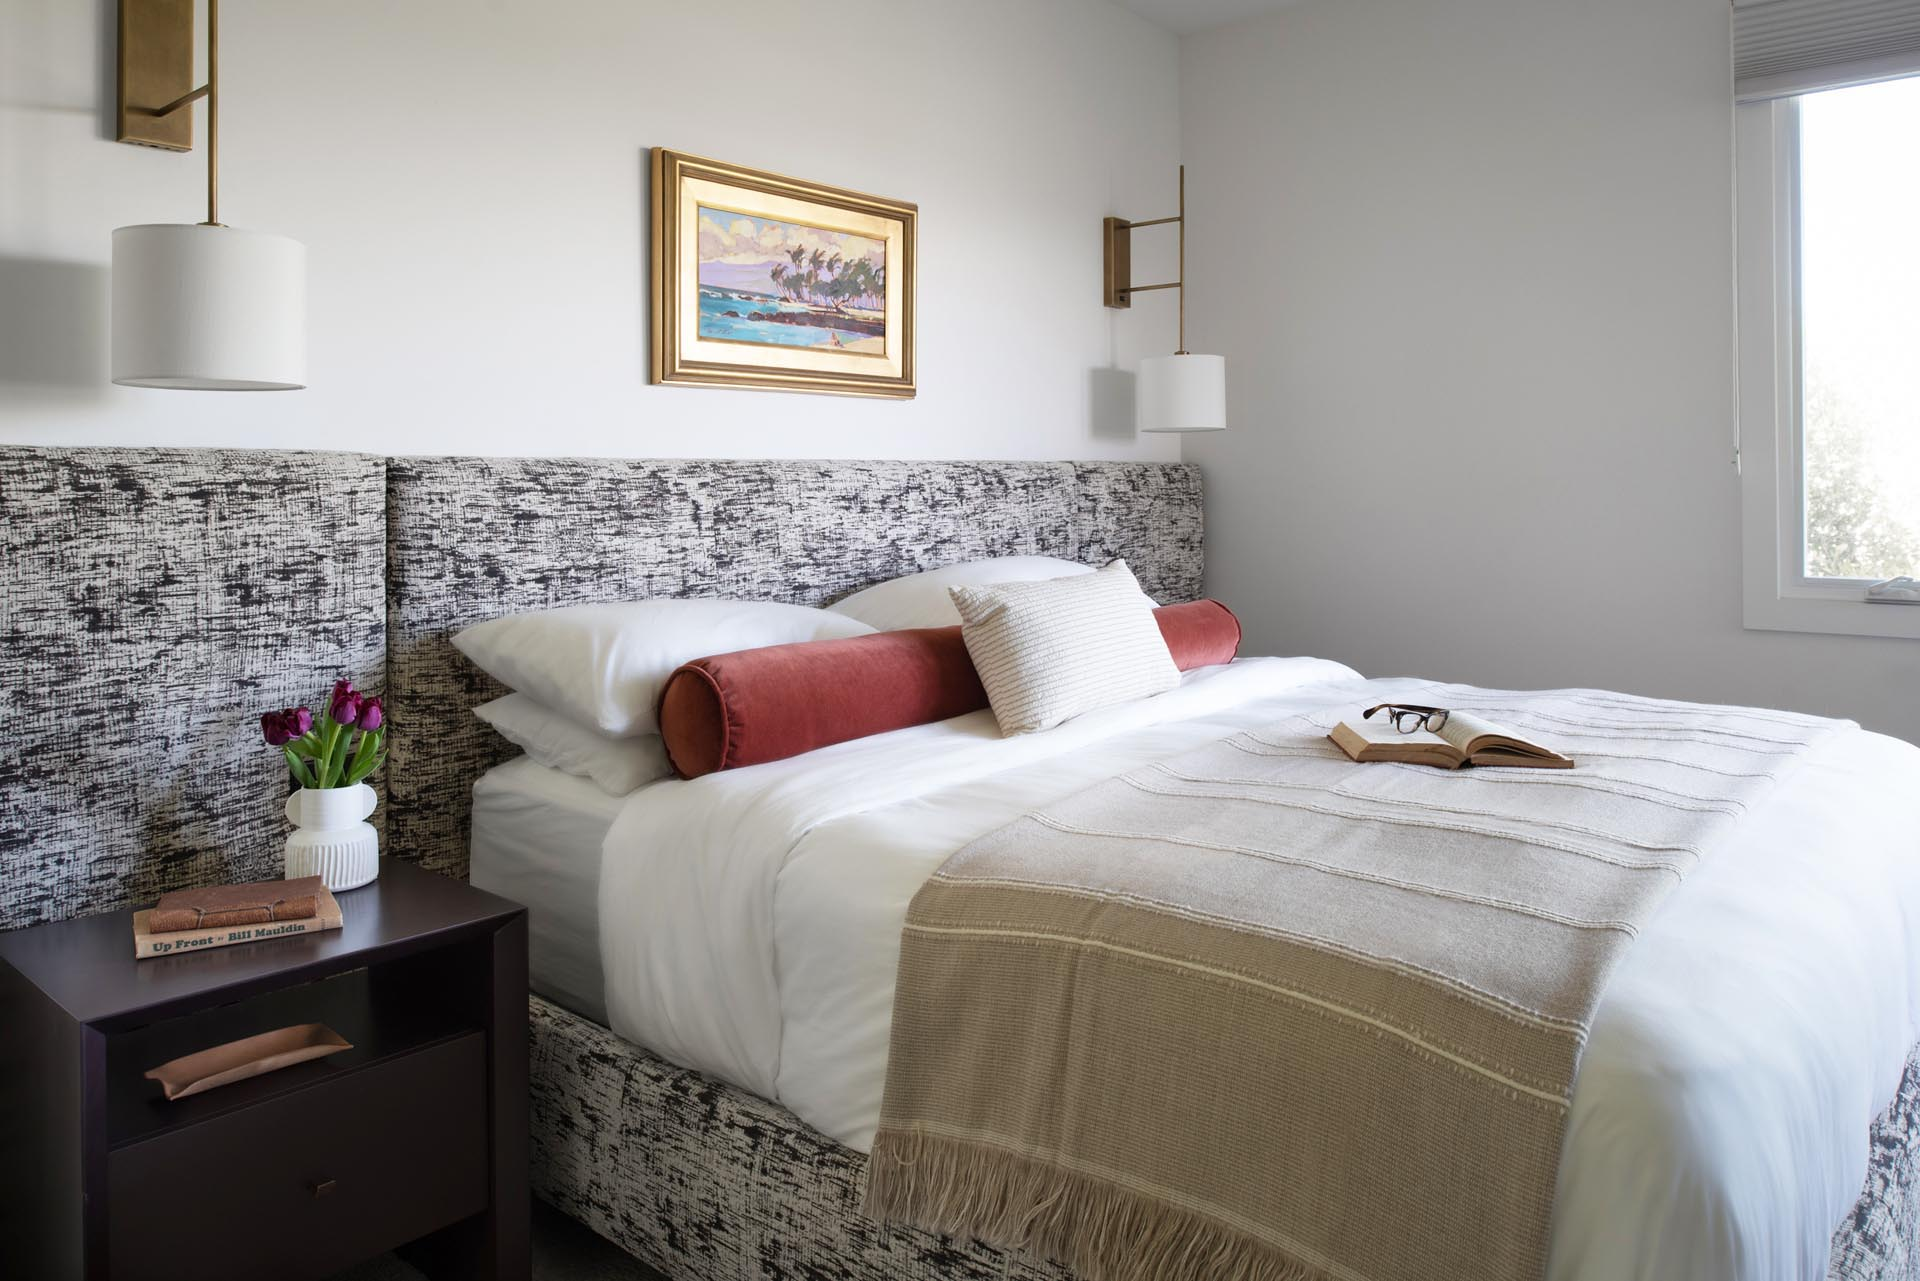 In this primary bedroom, a custom wall to wall headboard in Kelly Wearstler fabric was designed with integrated light switches as well as outlets. The fabric used for the headboard also carries on to the bed frame, while wall lights act as bedside tables.